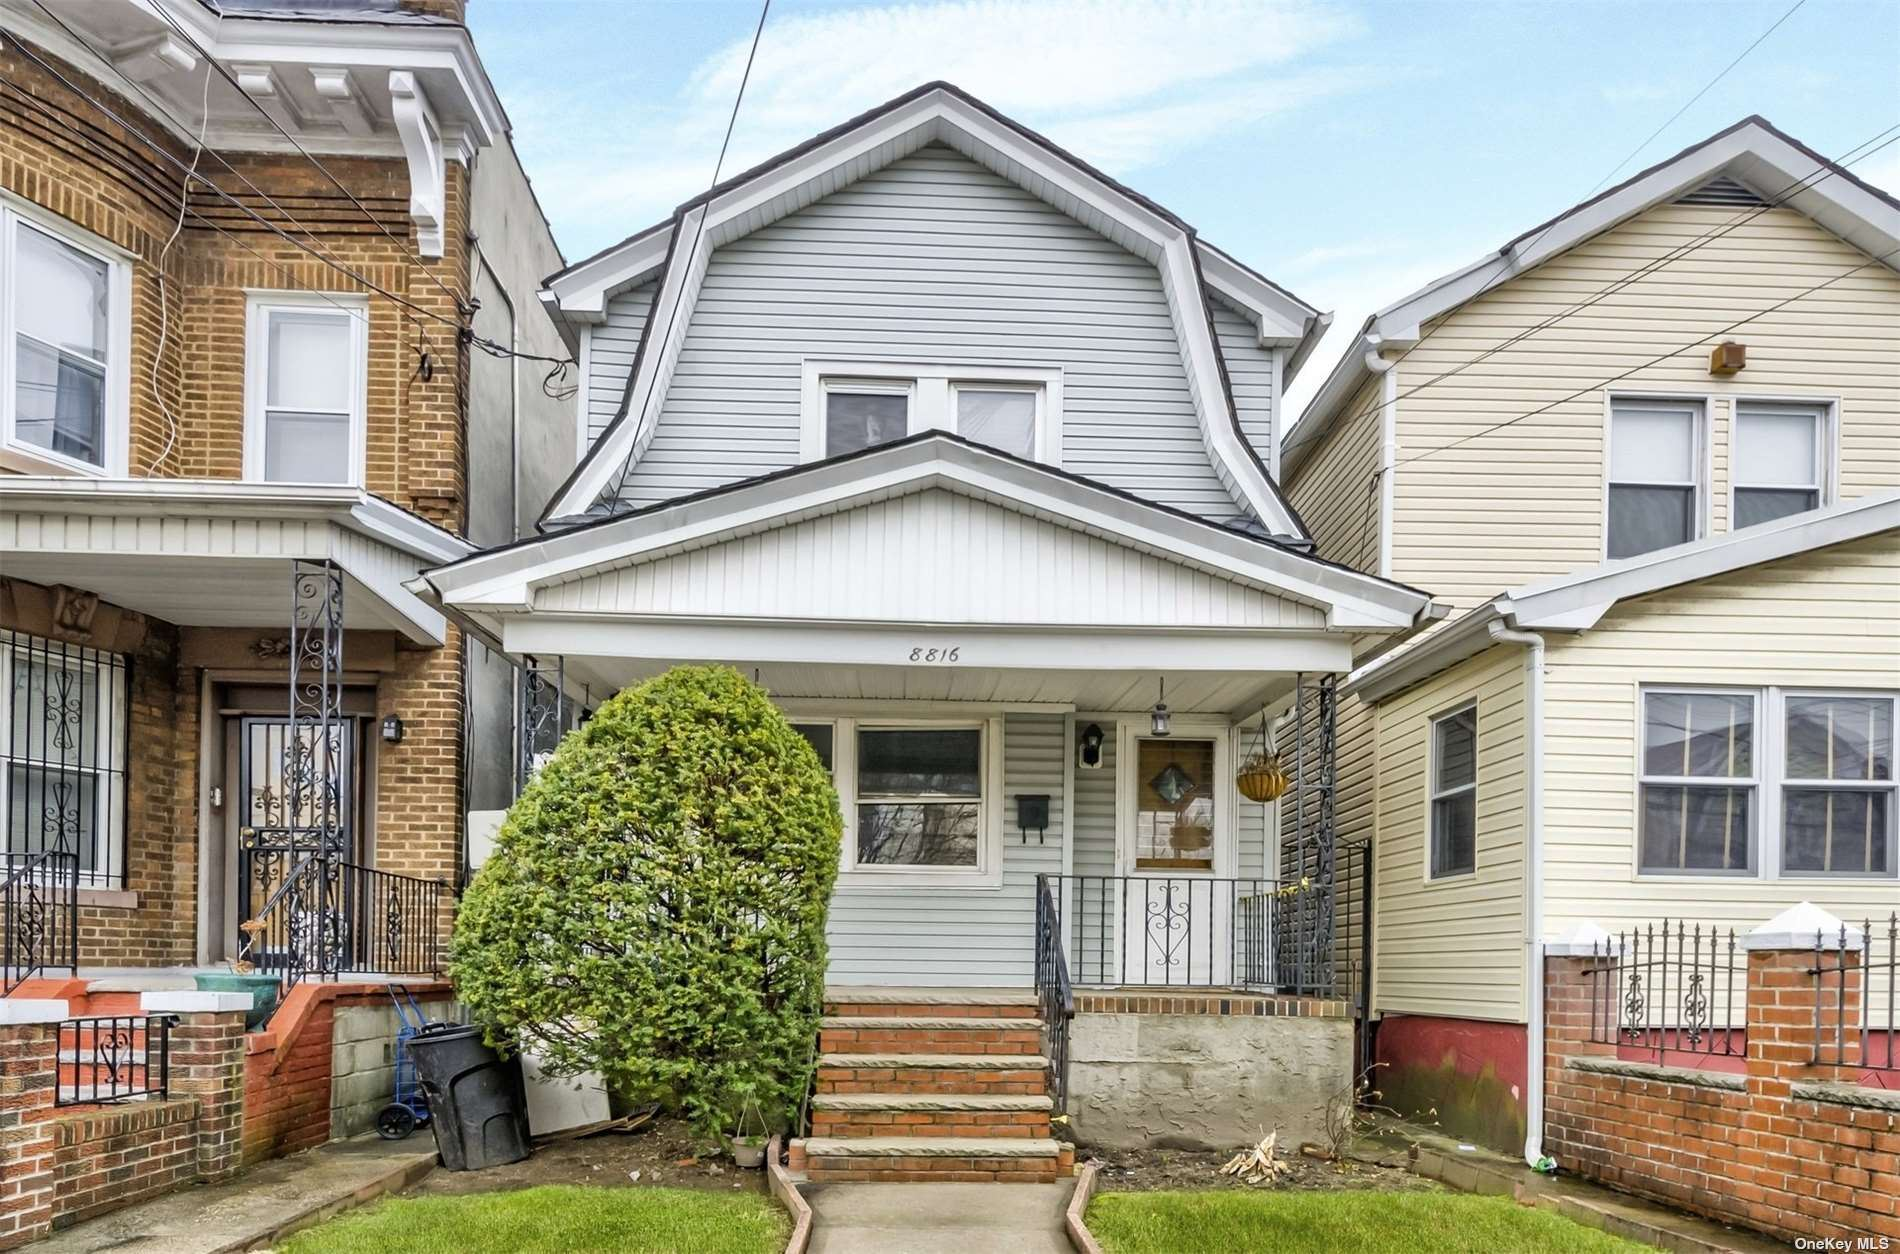 88-16 91st Avenue, Woodhaven, NY 11421 - MLS#: 3301602